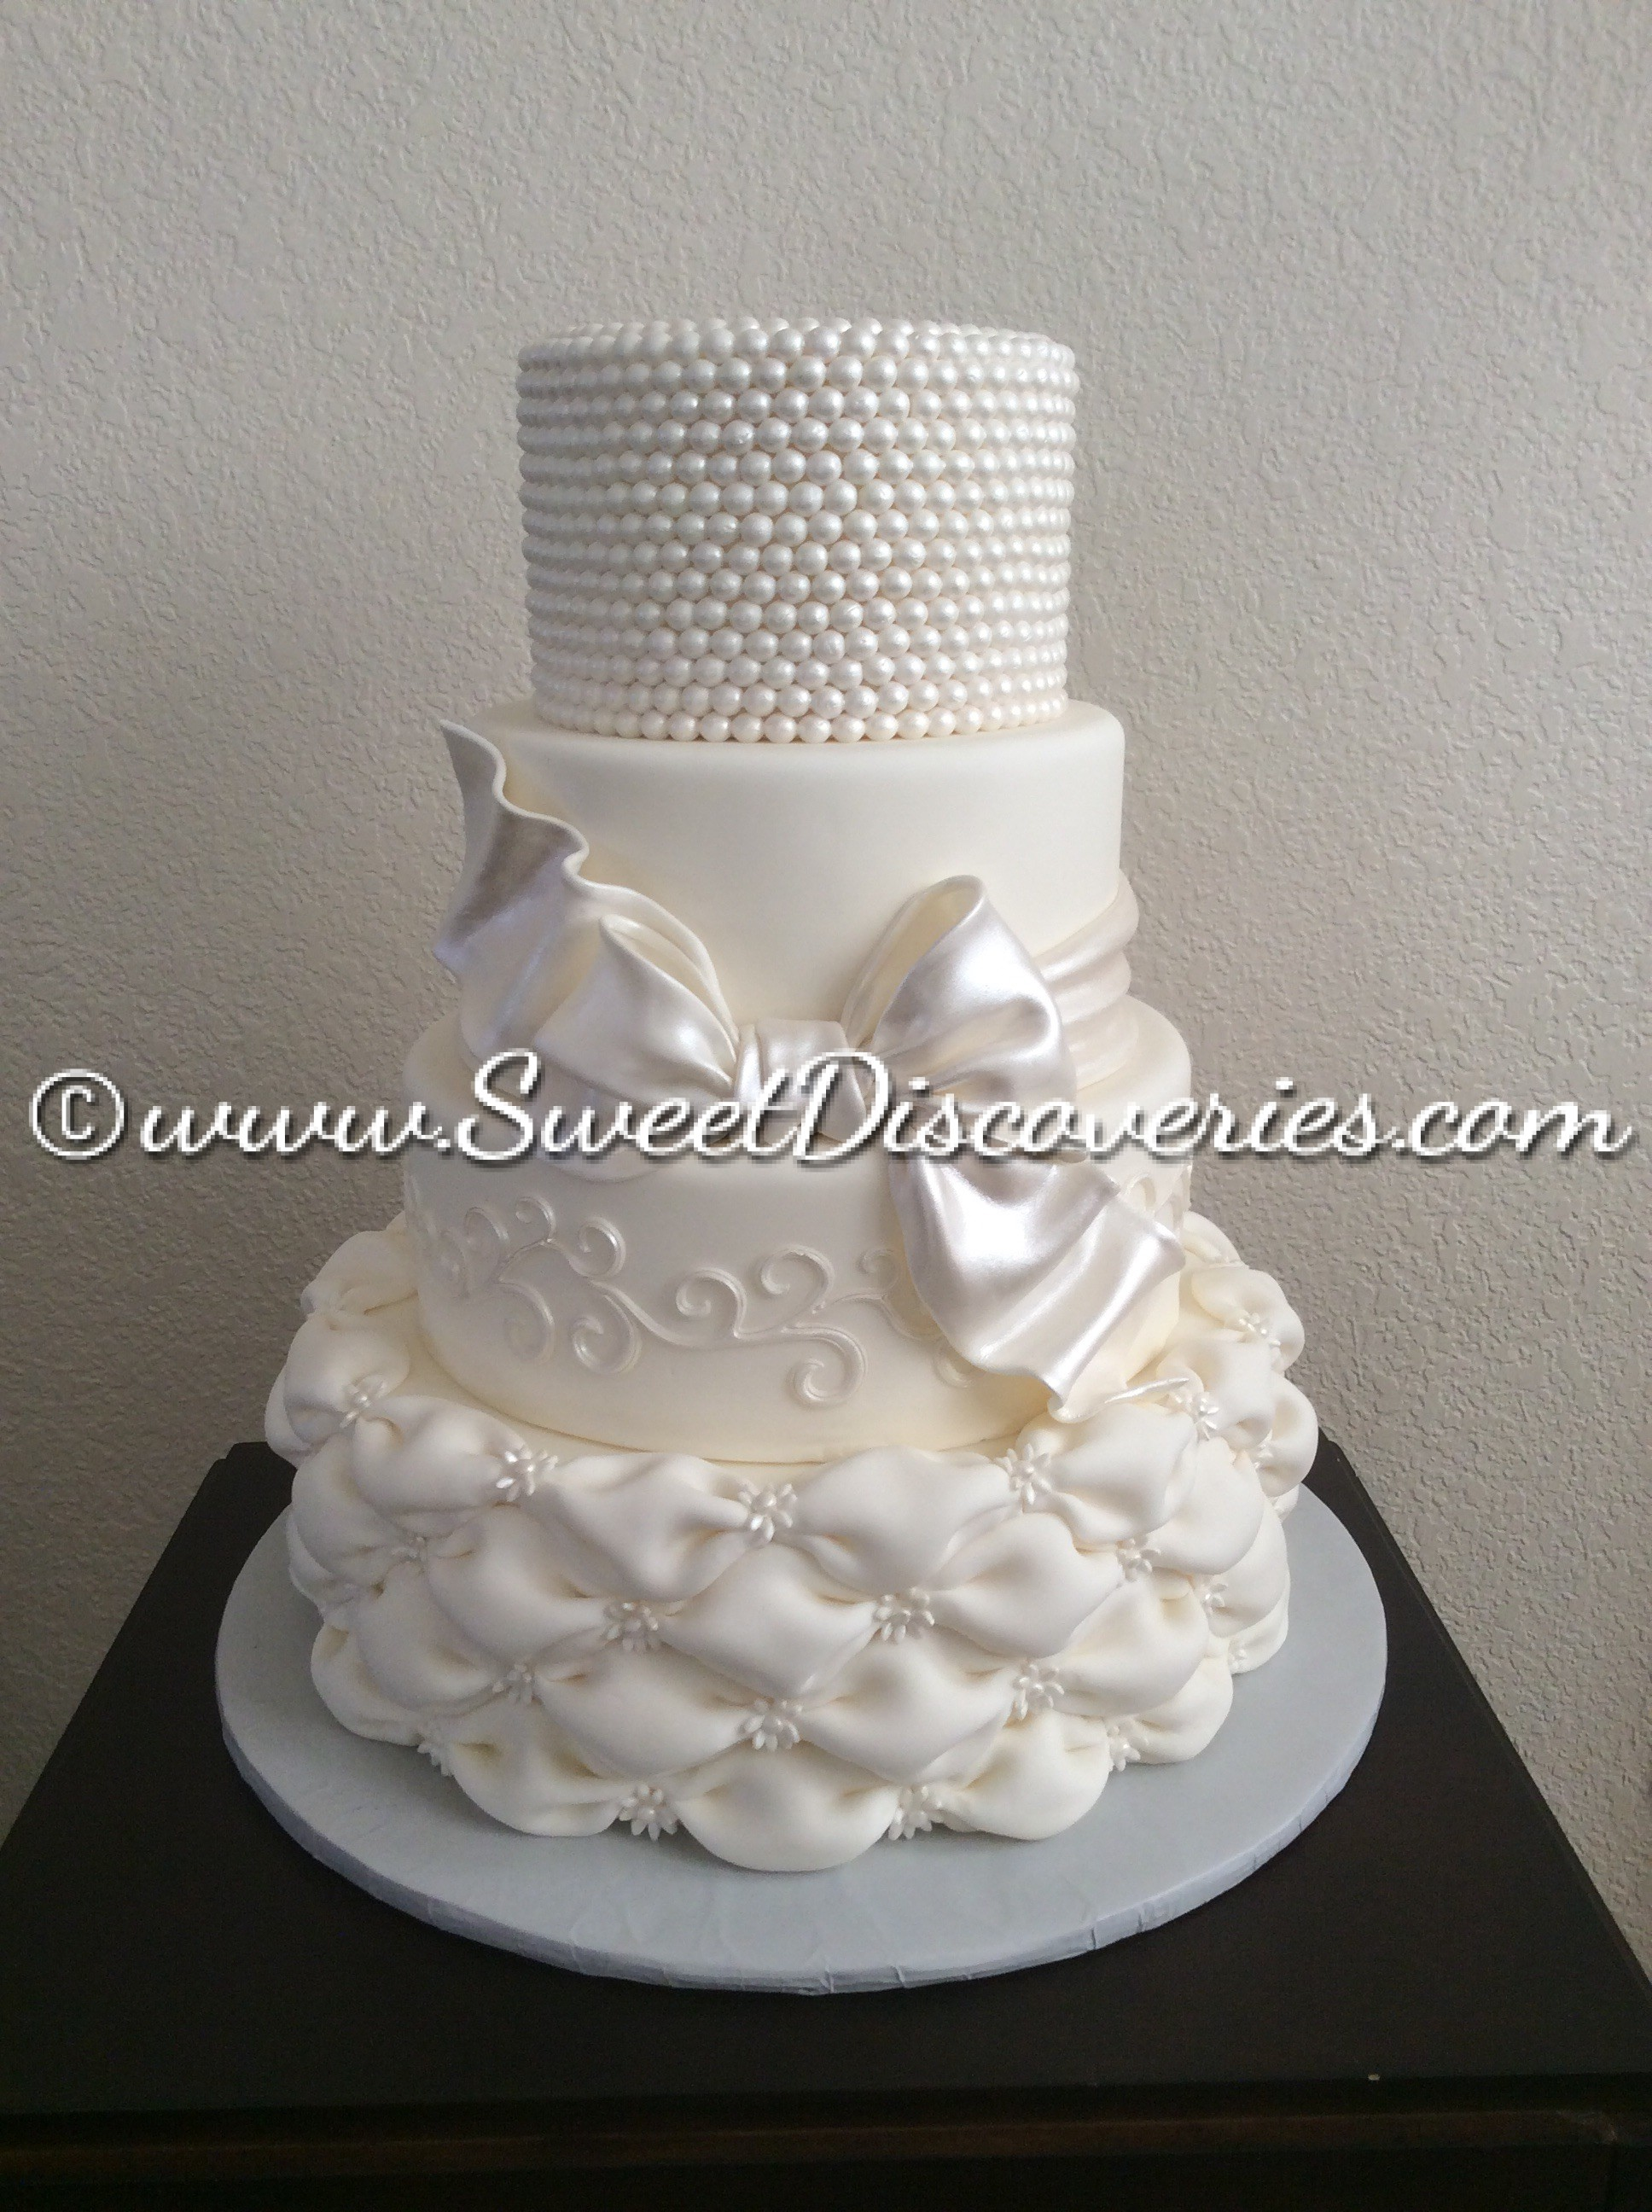 wedding cakes picture gallery wedding cakes gallery sweet discoveries 25269